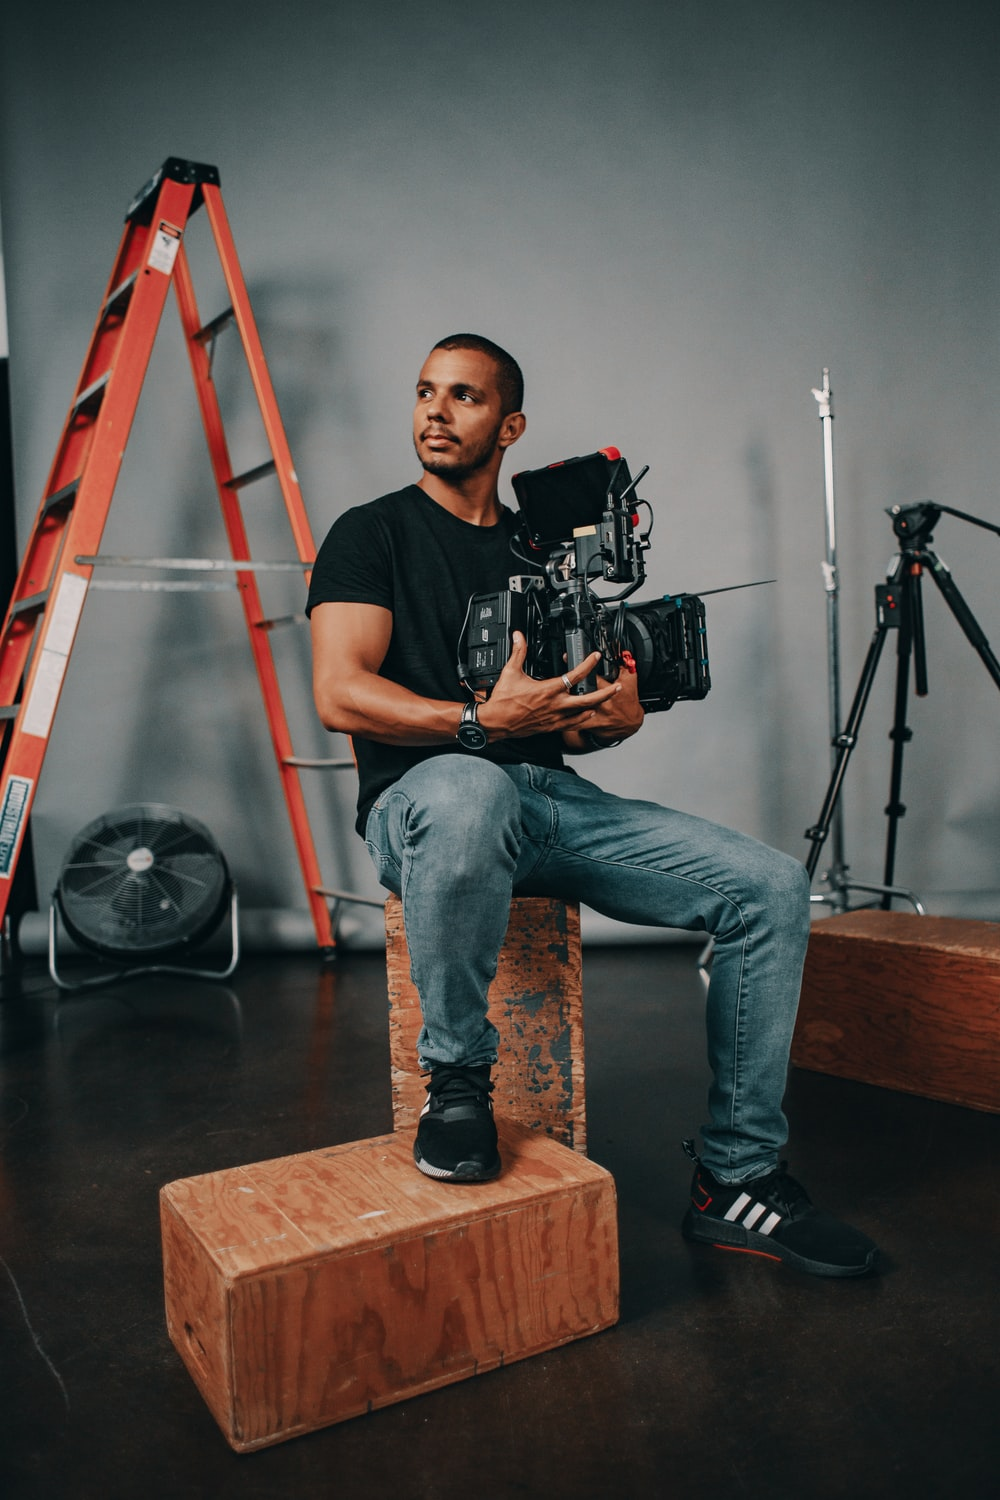 man in black crew neck t-shirt and blue denim jeans sitting on brown wooden stool